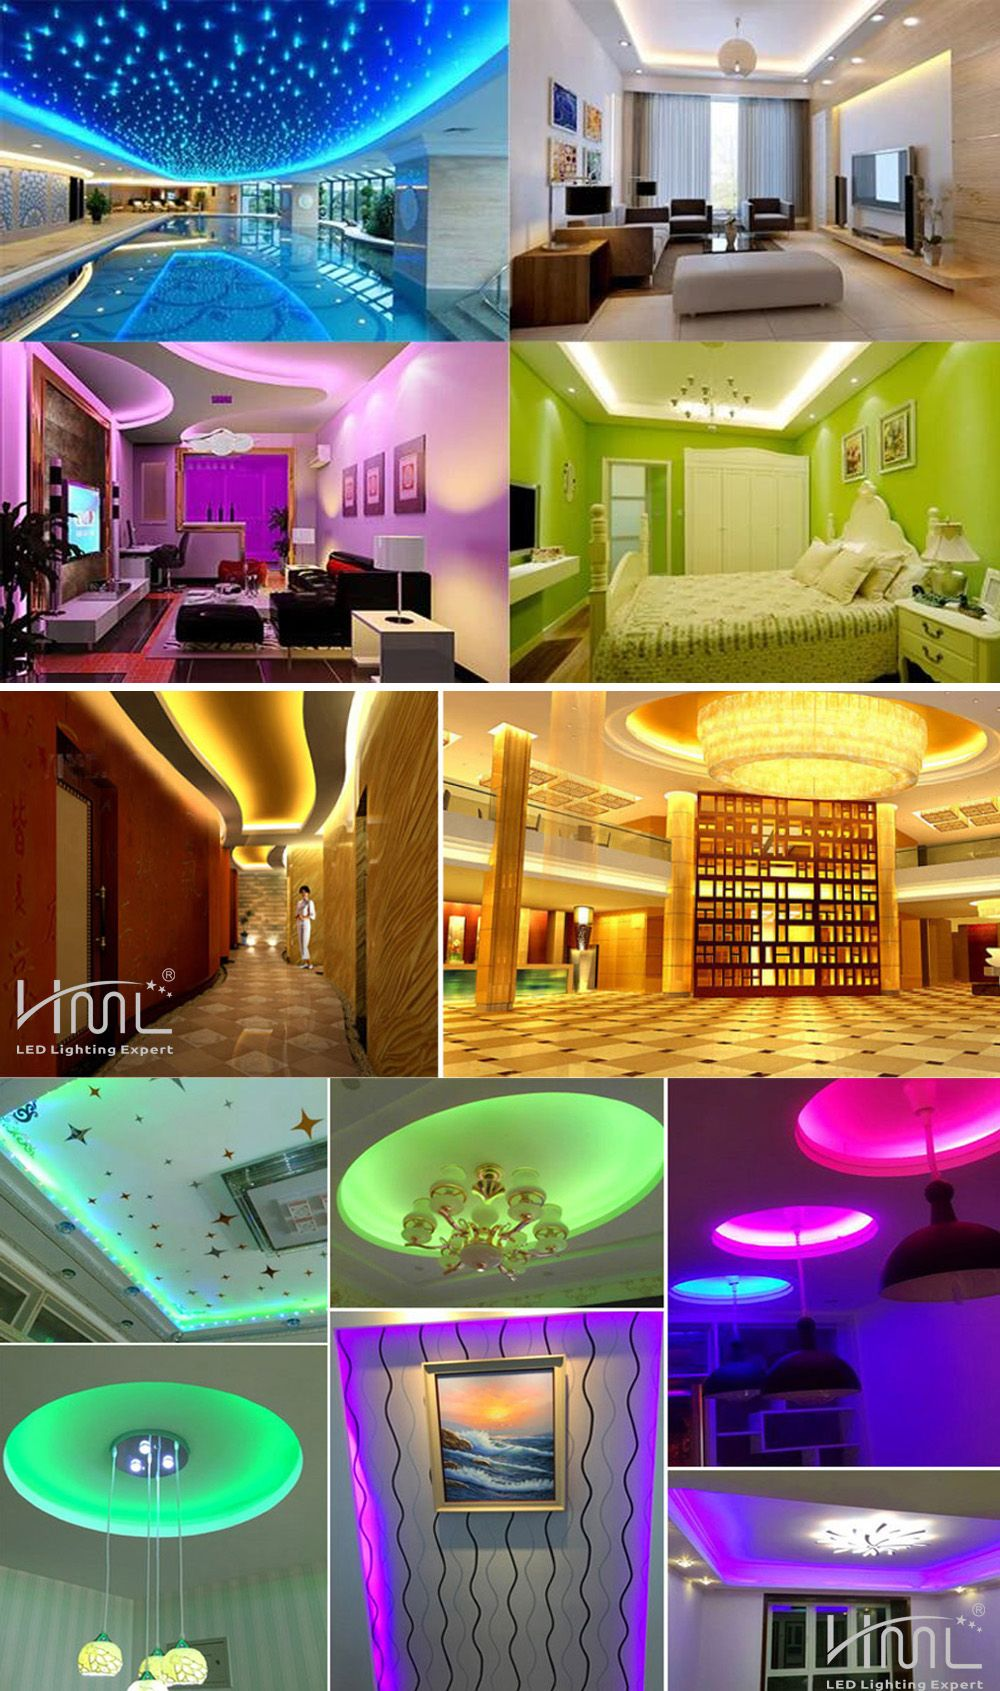 HML 2pcs 5M 24W RGB SMD2835 300 LED RGB Strip Light - with IR 20 Keys Music Remote Control and EU Adapter